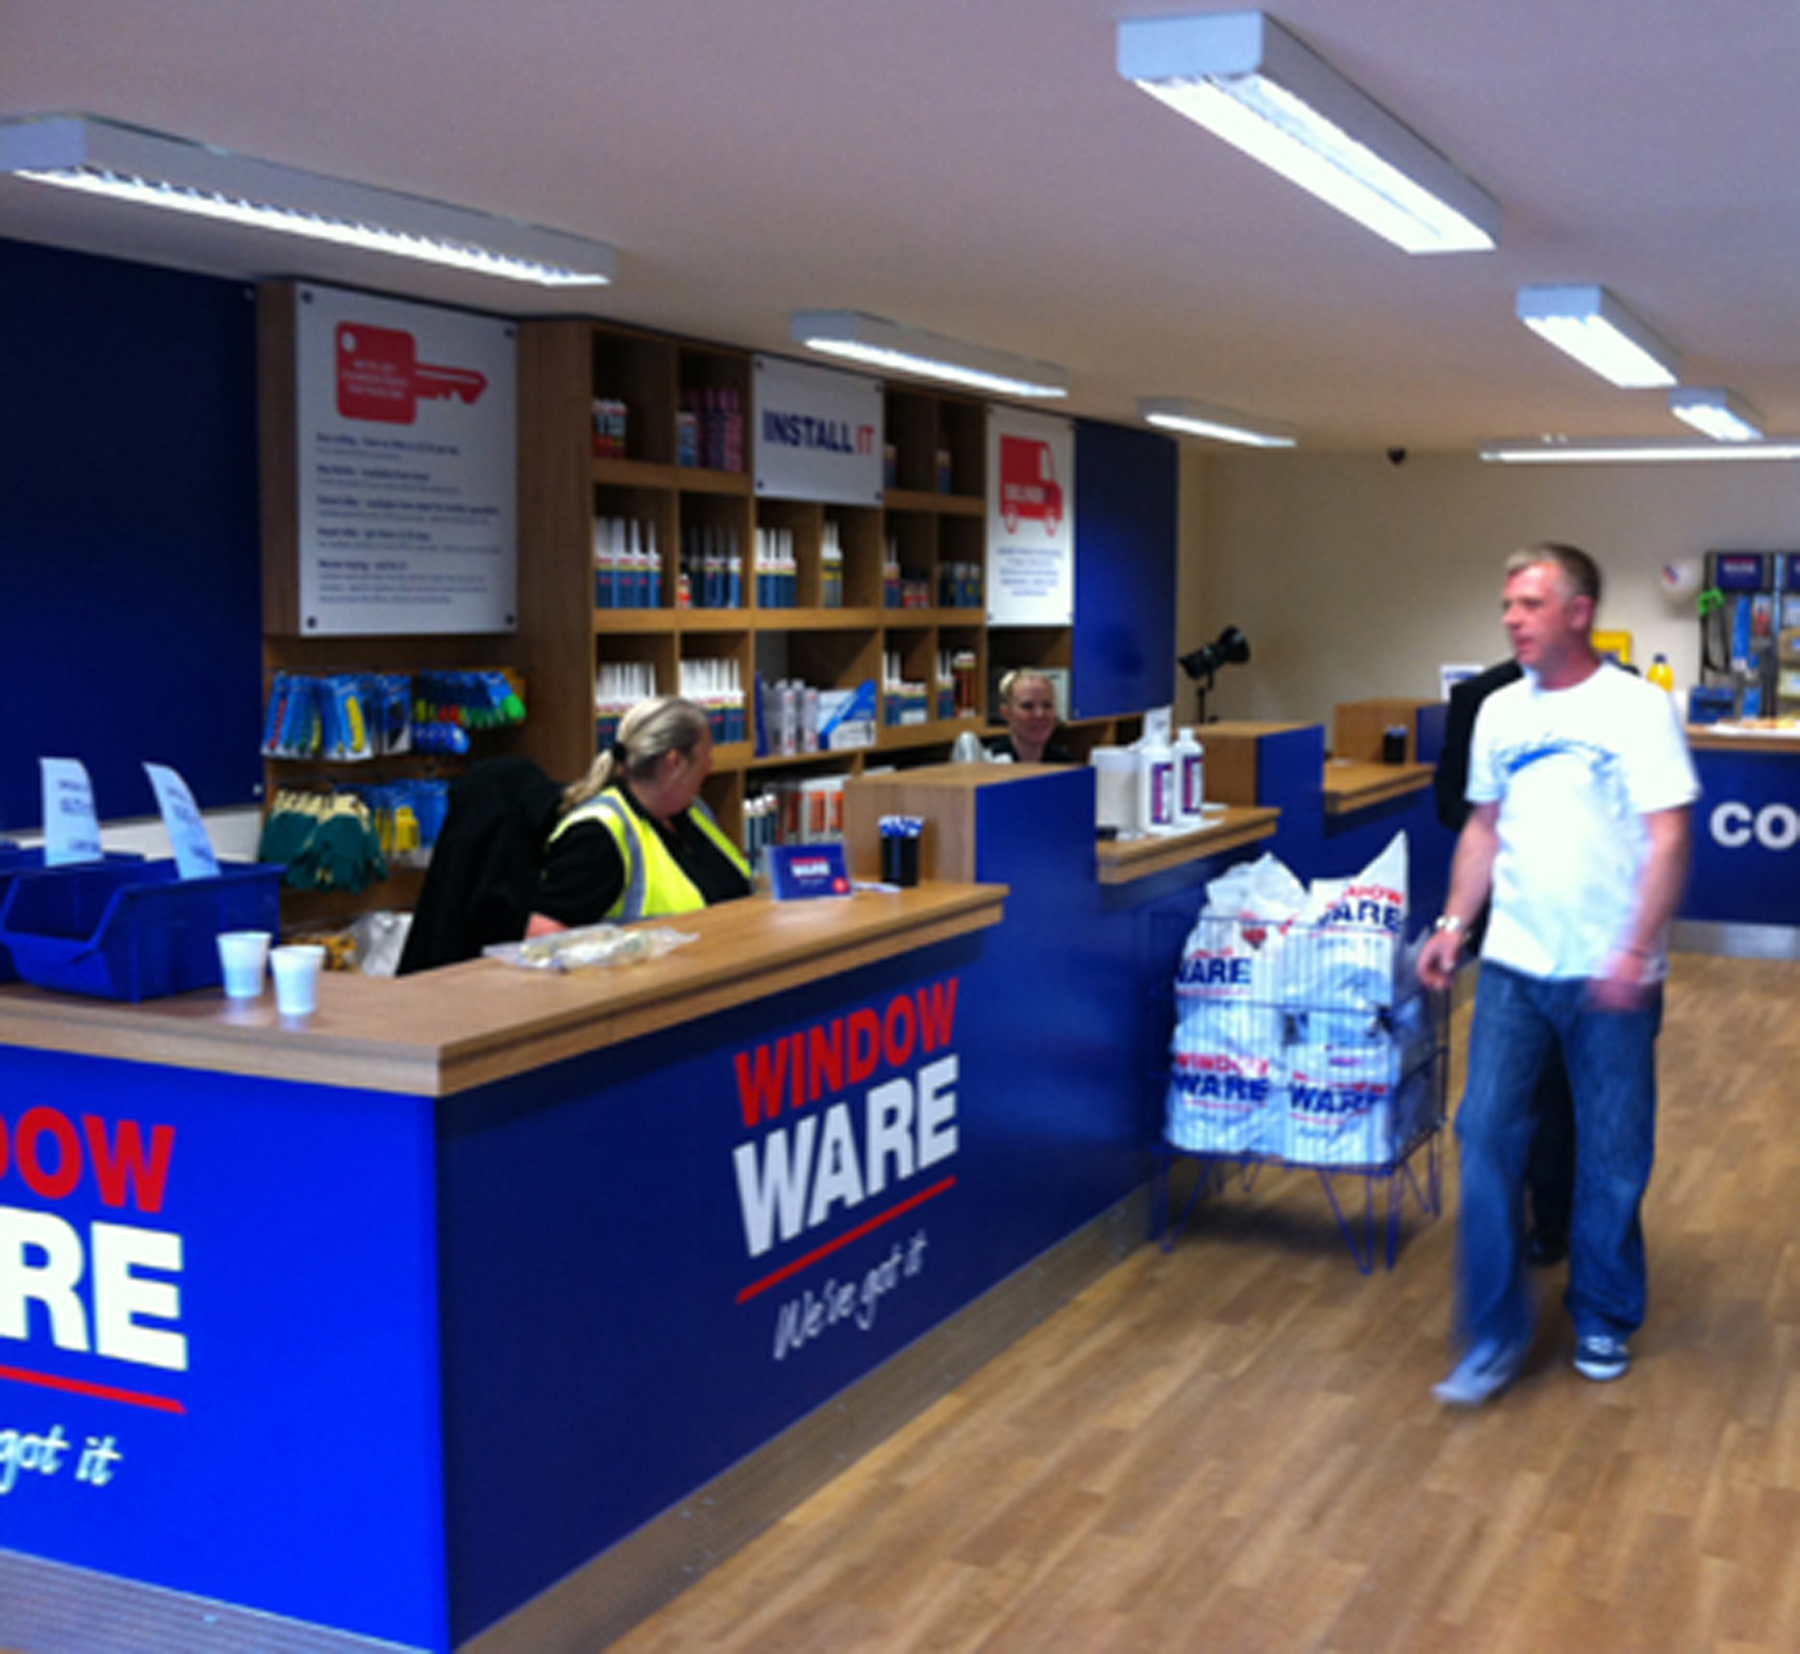 HOPPE Supports Window Ware on its Extensive Development Programme